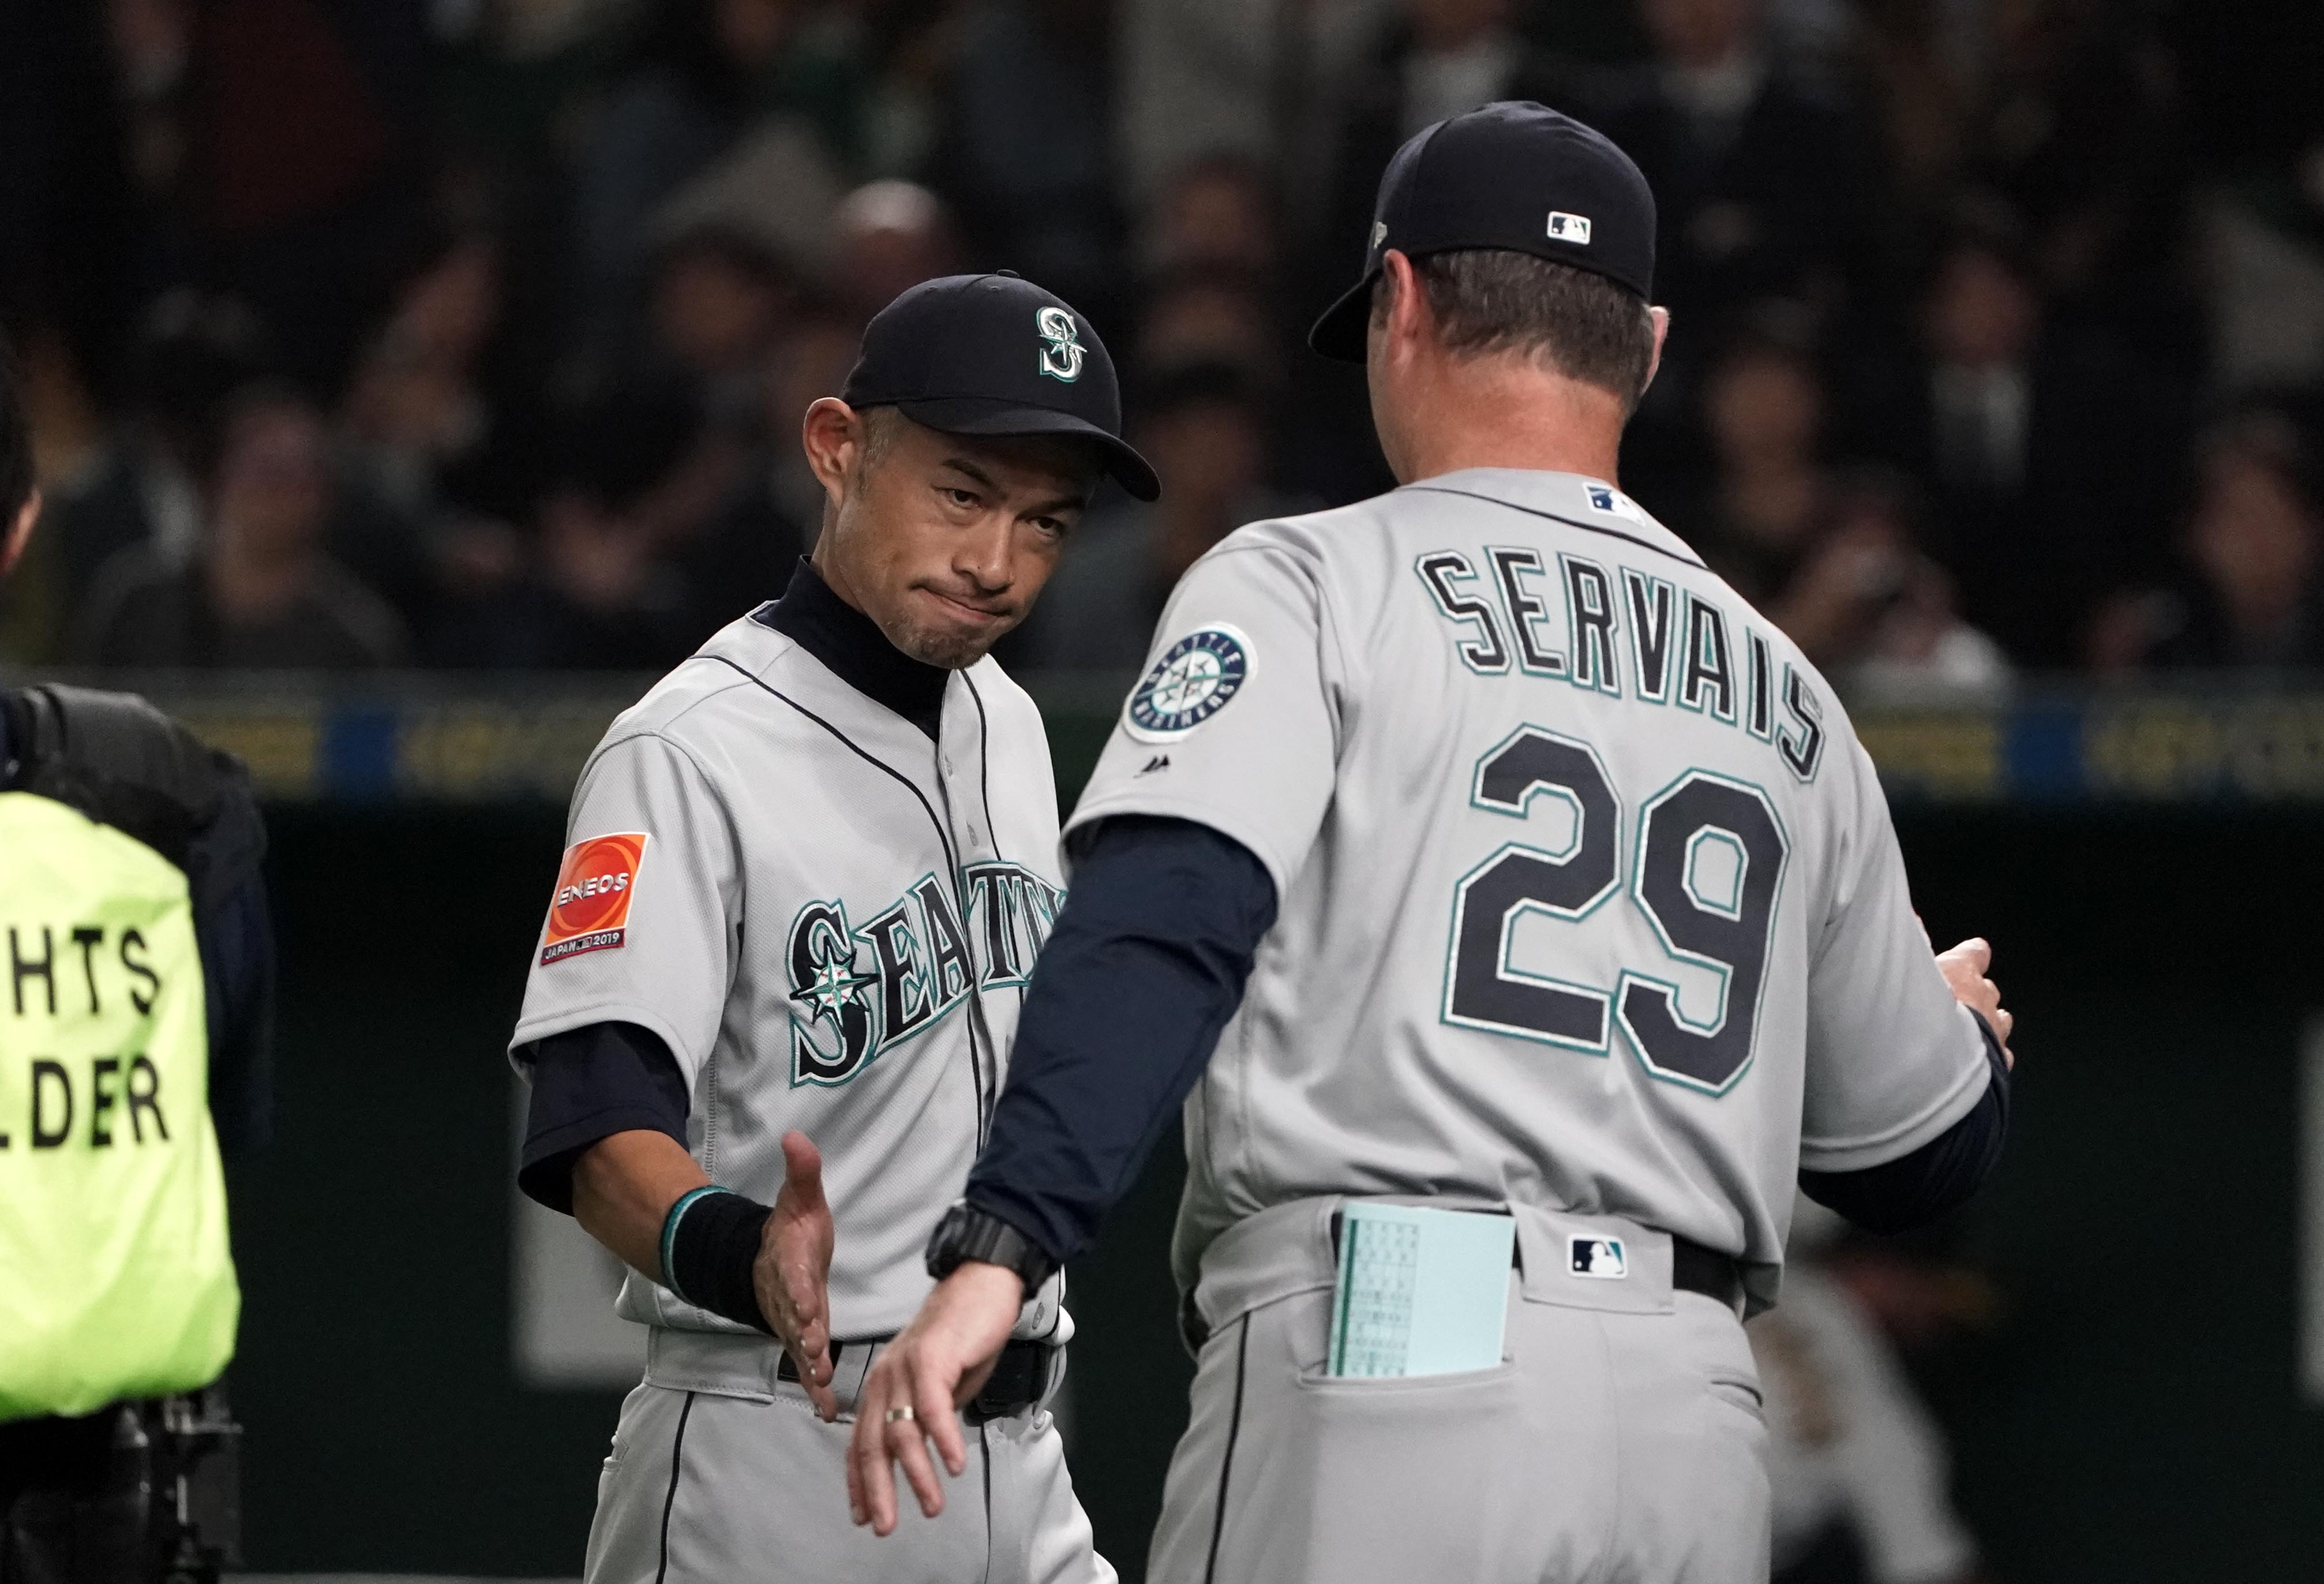 TOKYO, JAPAN - MARCH 20: Outfielder Ichiro Suzuki #51 and Head coach Scott Servais #29 of the Seattle Mariners celebrate their victory in the game between Seattle Mariners and Oakland Athletics at Tokyo Dome on March 20, 2019 in Tokyo, Japan. (Photo by Masterpress/Getty Images)